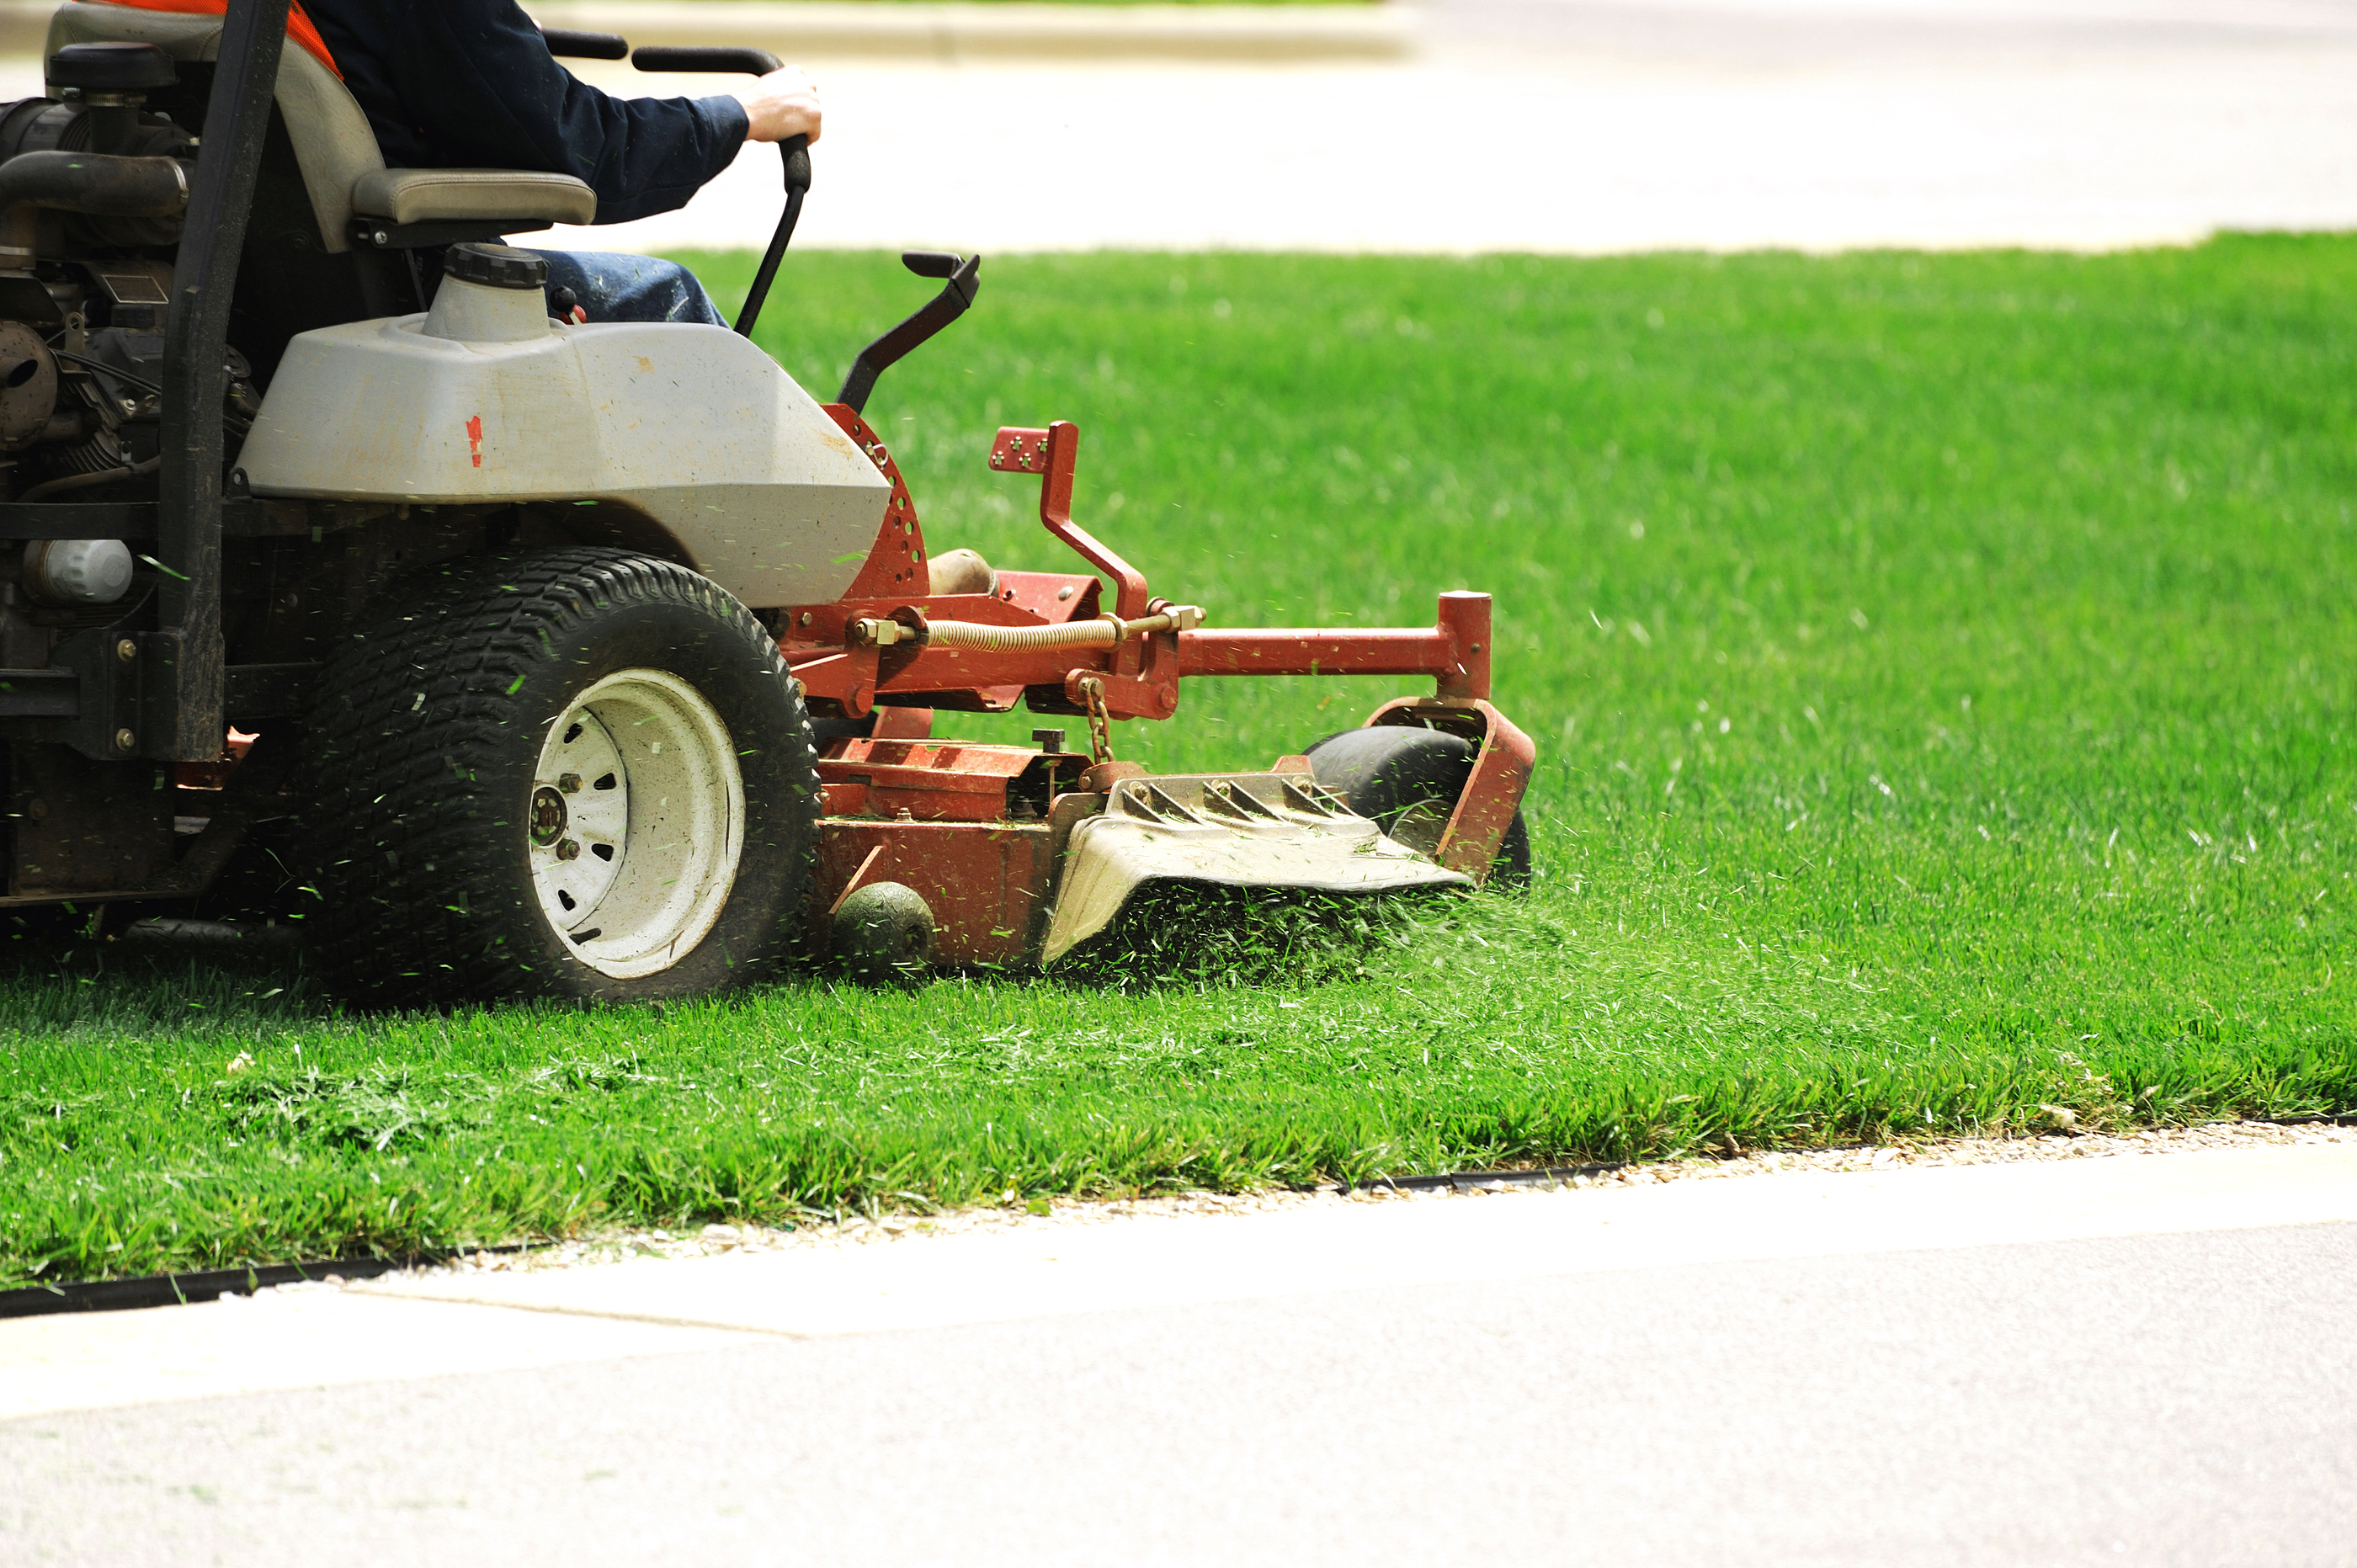 Riding Lawnmower mowing grass